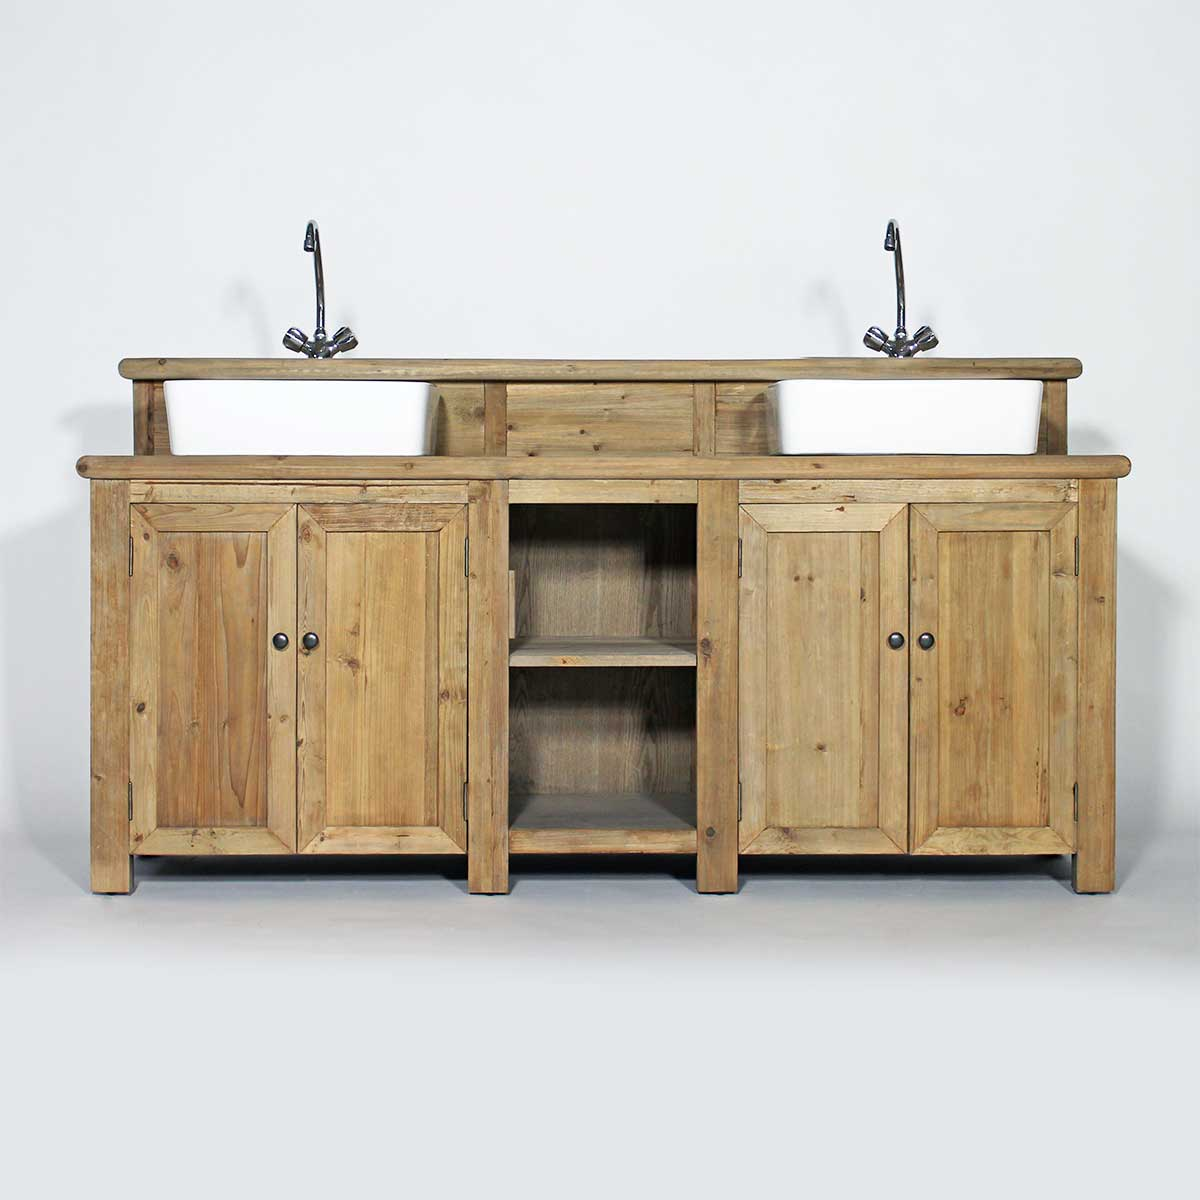 meuble bois recycl effet vieilli made in meubles. Black Bedroom Furniture Sets. Home Design Ideas